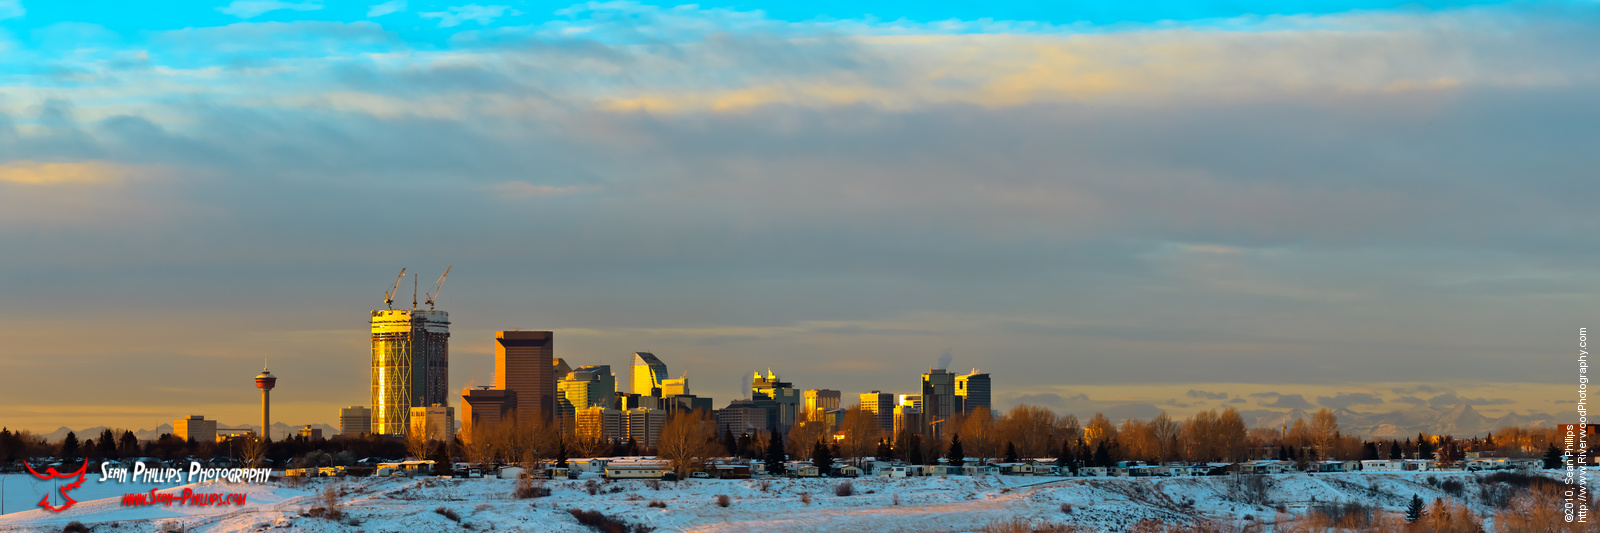 Dramatic skies over the Calgary cityscape in the morning. Including the new Bow building towering over the buildings around it...©2010, Sean Phillips.http://www.RiverwoodPhotography.com (Sean Phillips)